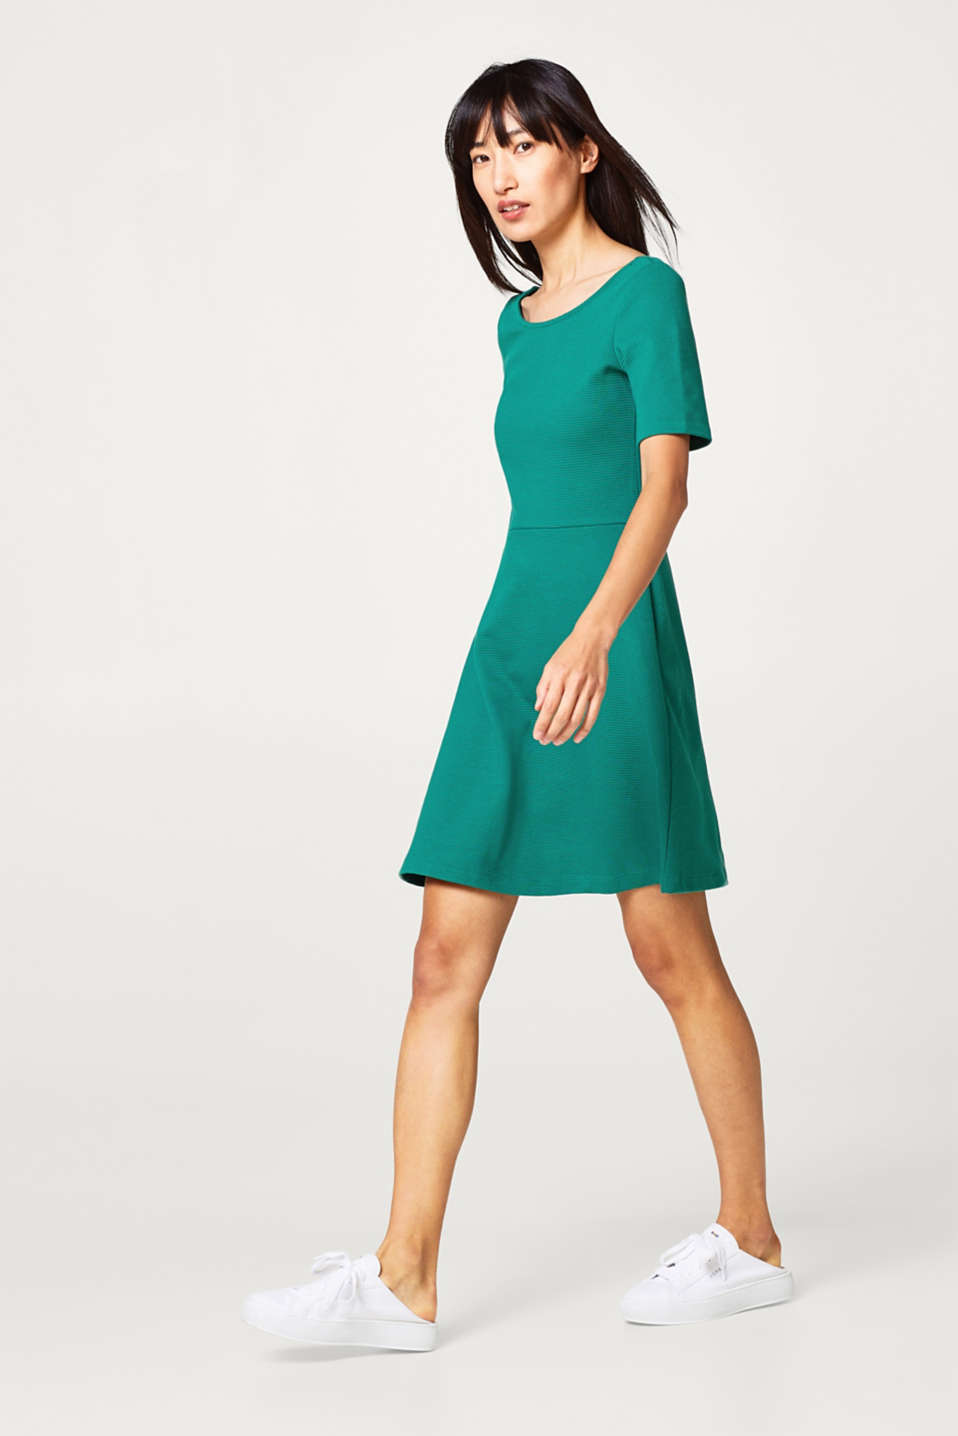 Compact jersey dress with a ribbed texture